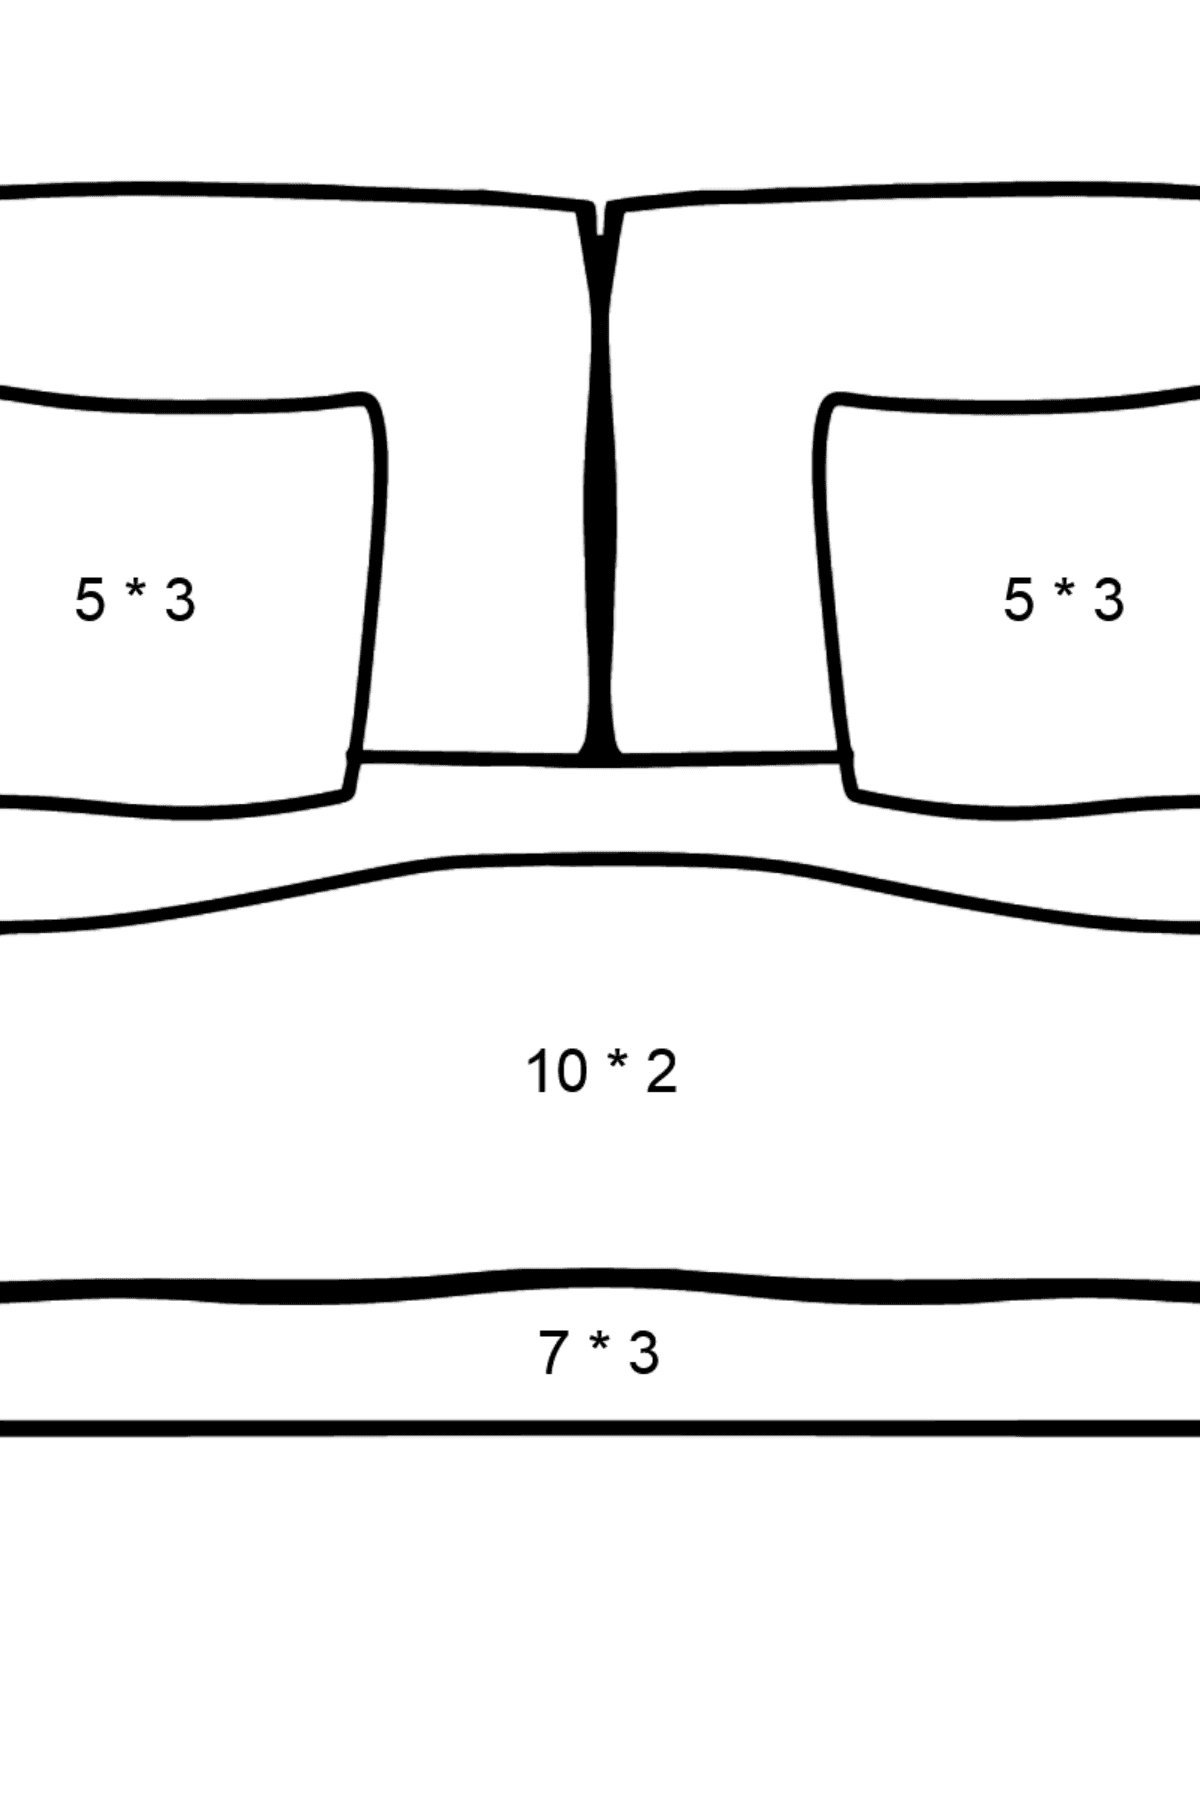 Sofa coloring page - Math Coloring - Multiplication for Kids